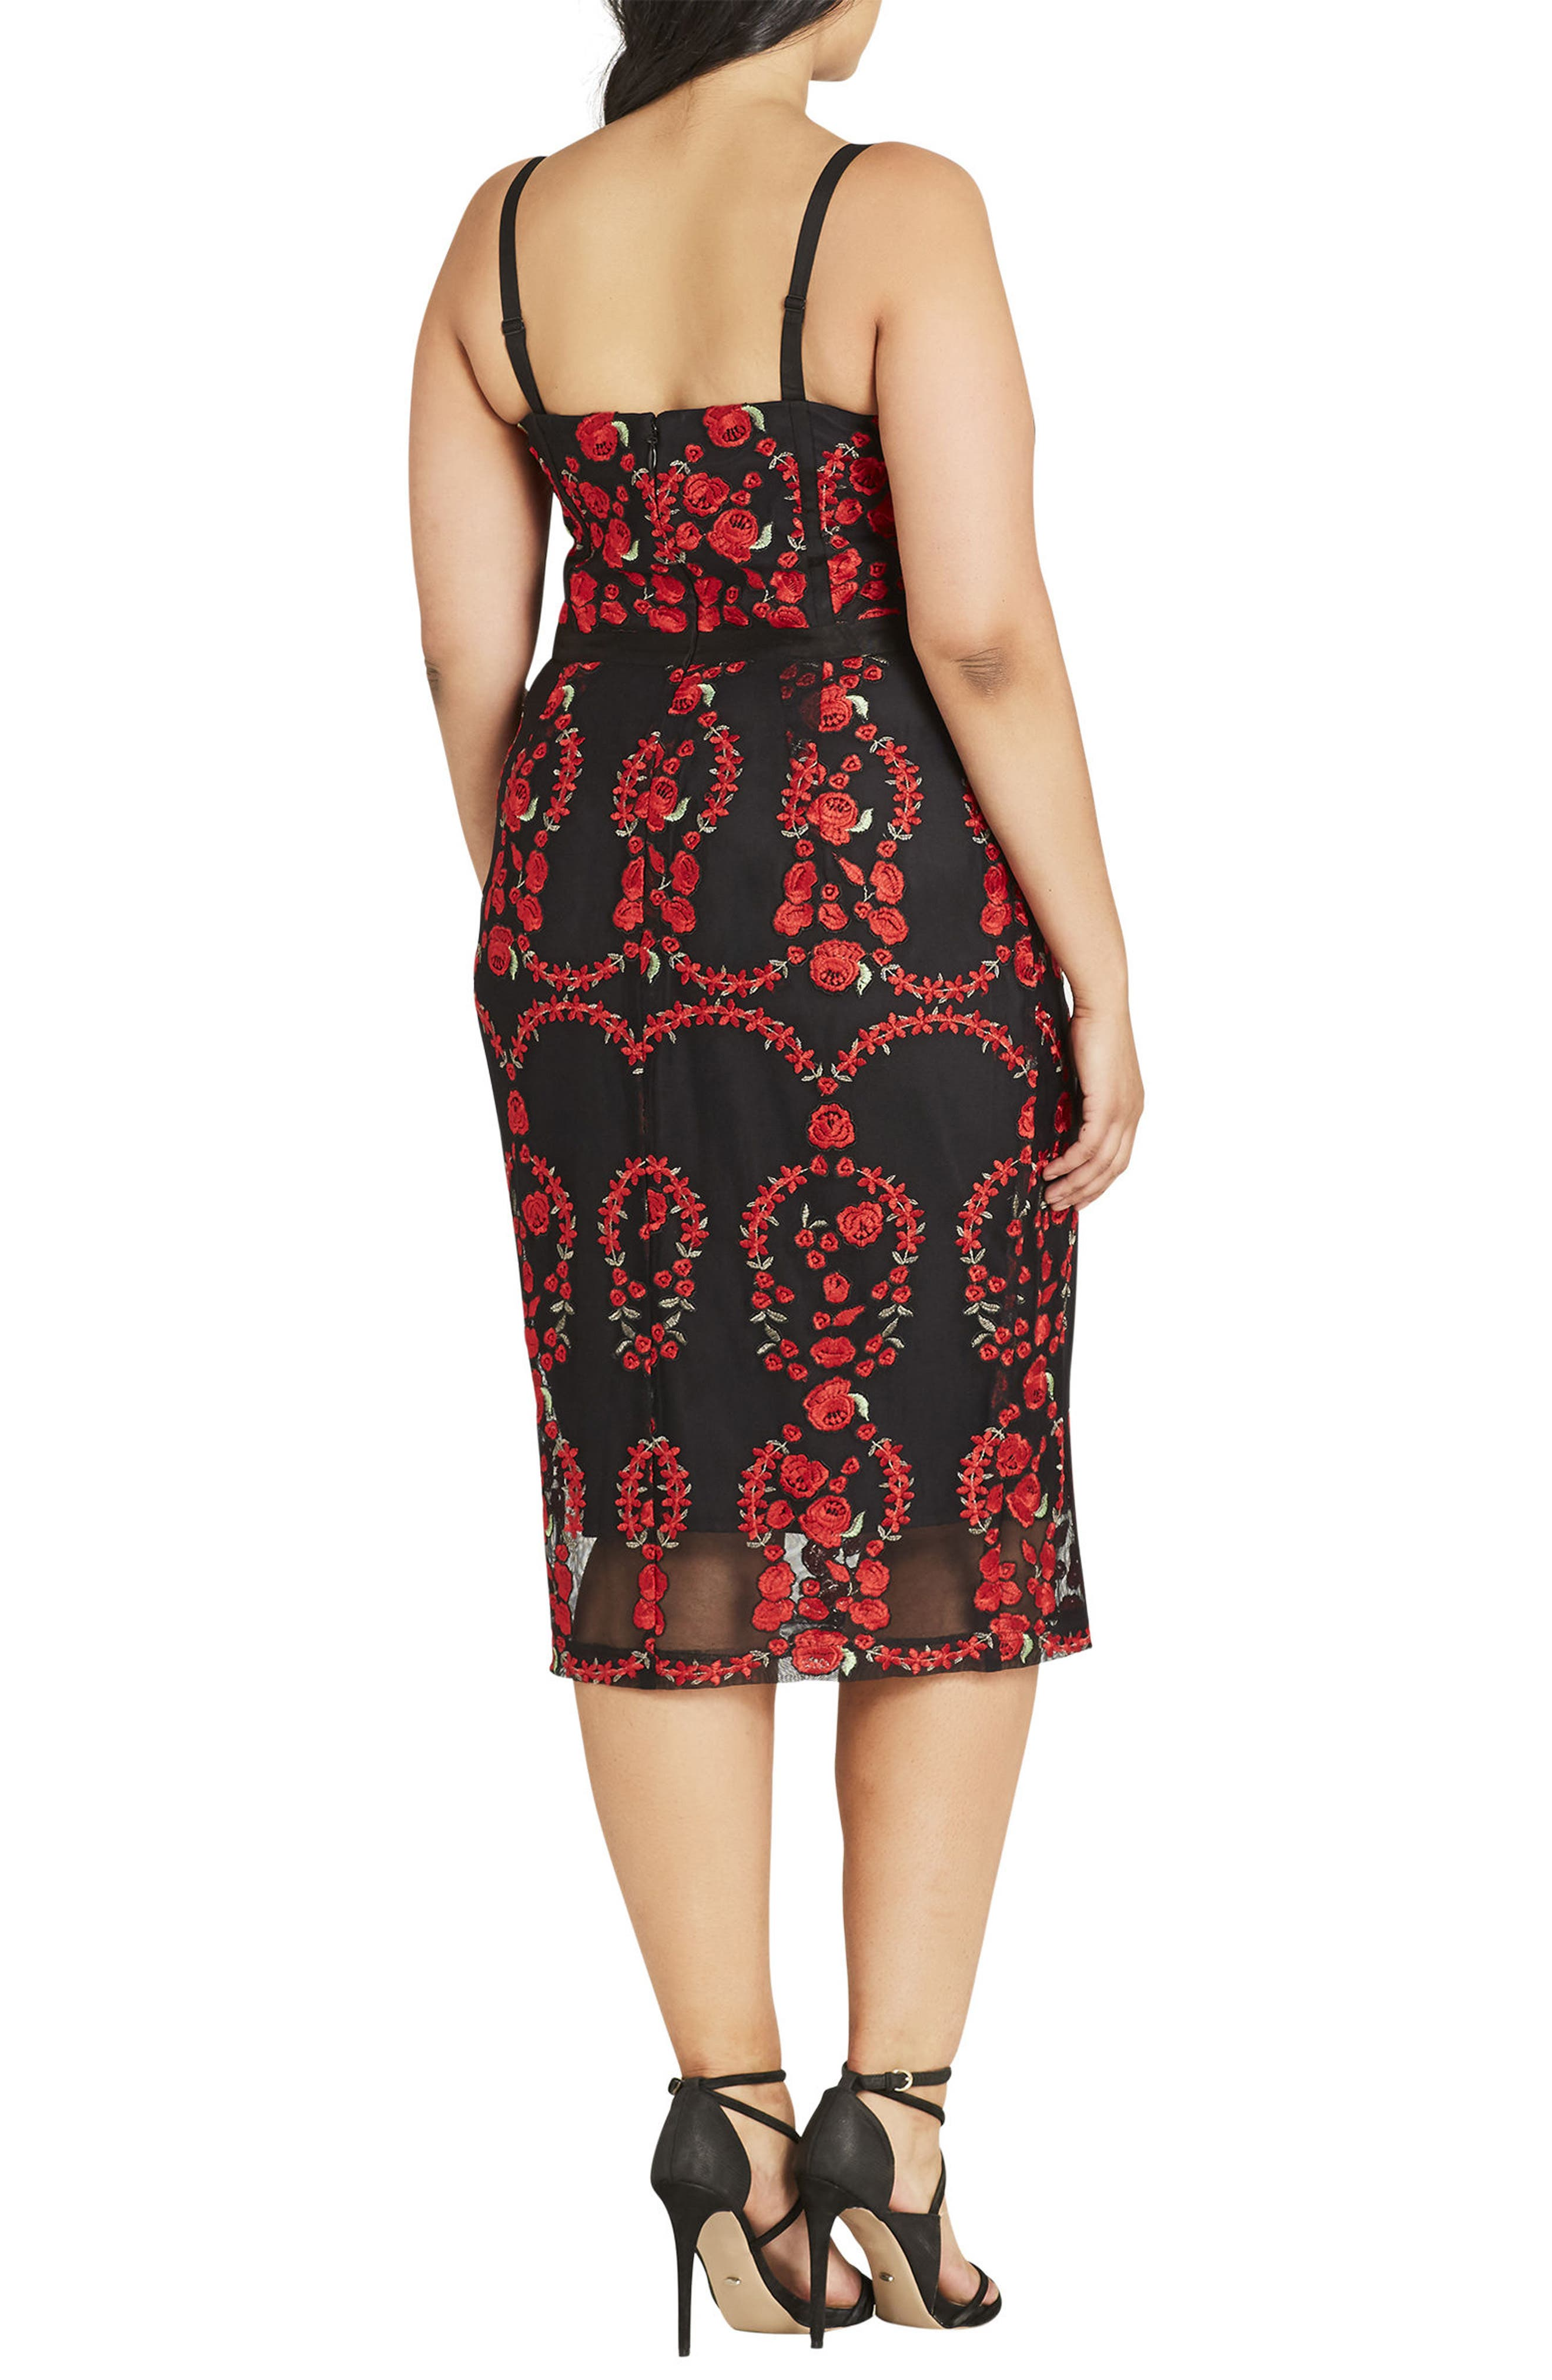 CITY CHIC, Dolce Rose Embroidered Corset Dress, Alternate thumbnail 2, color, BLACK